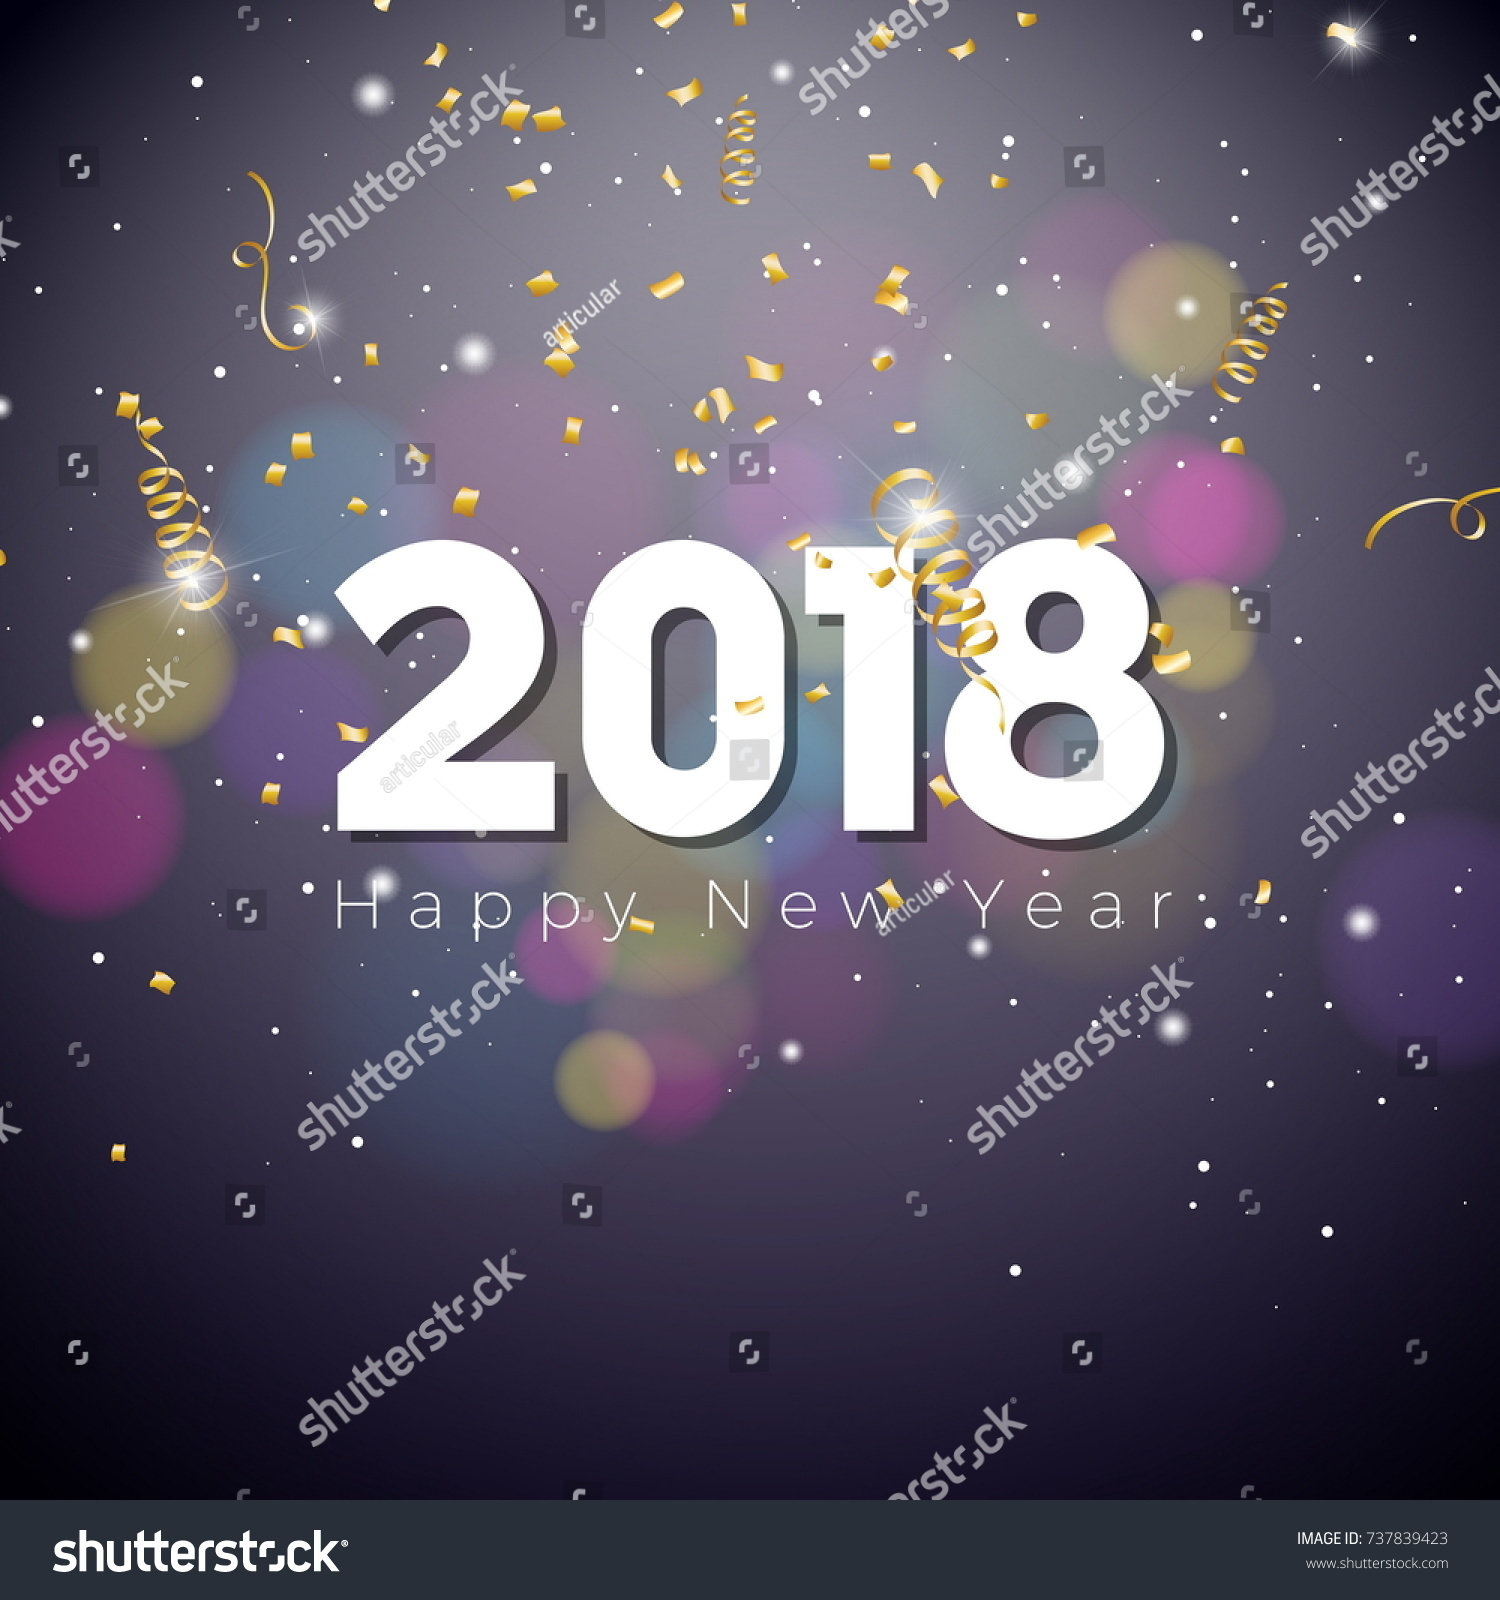 vector happy new year 2018 illustration on shiny lighting dark background with typography